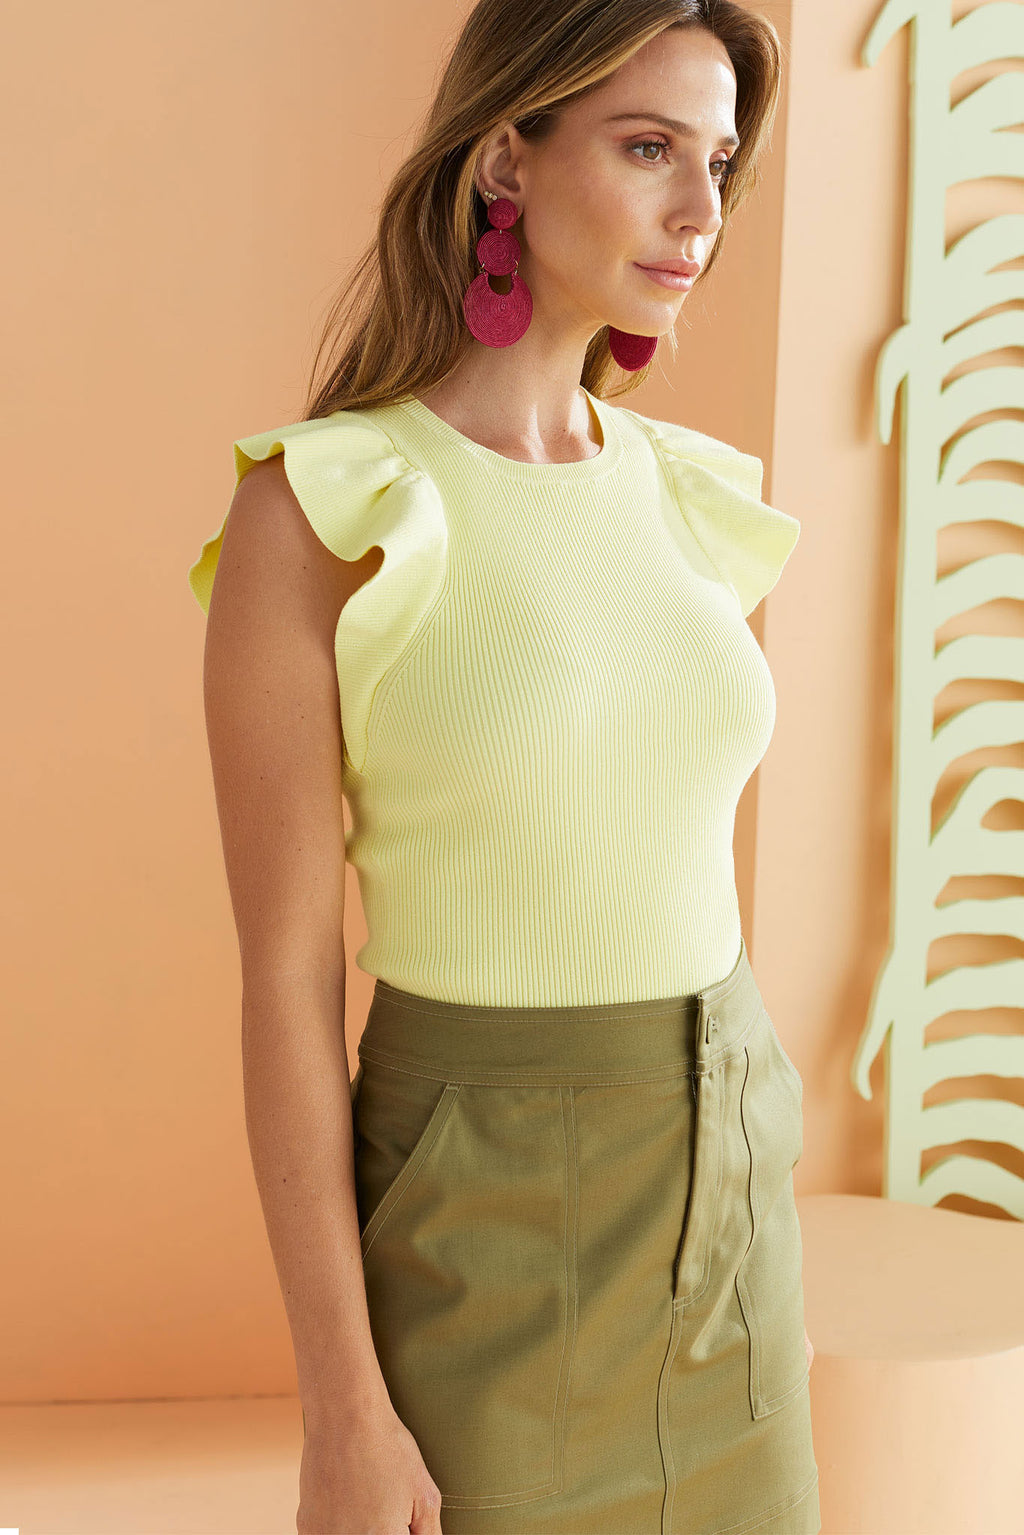 lemon lime citrus colored knit top with ruffles on shoulders. worn with olive green pencil skirt.